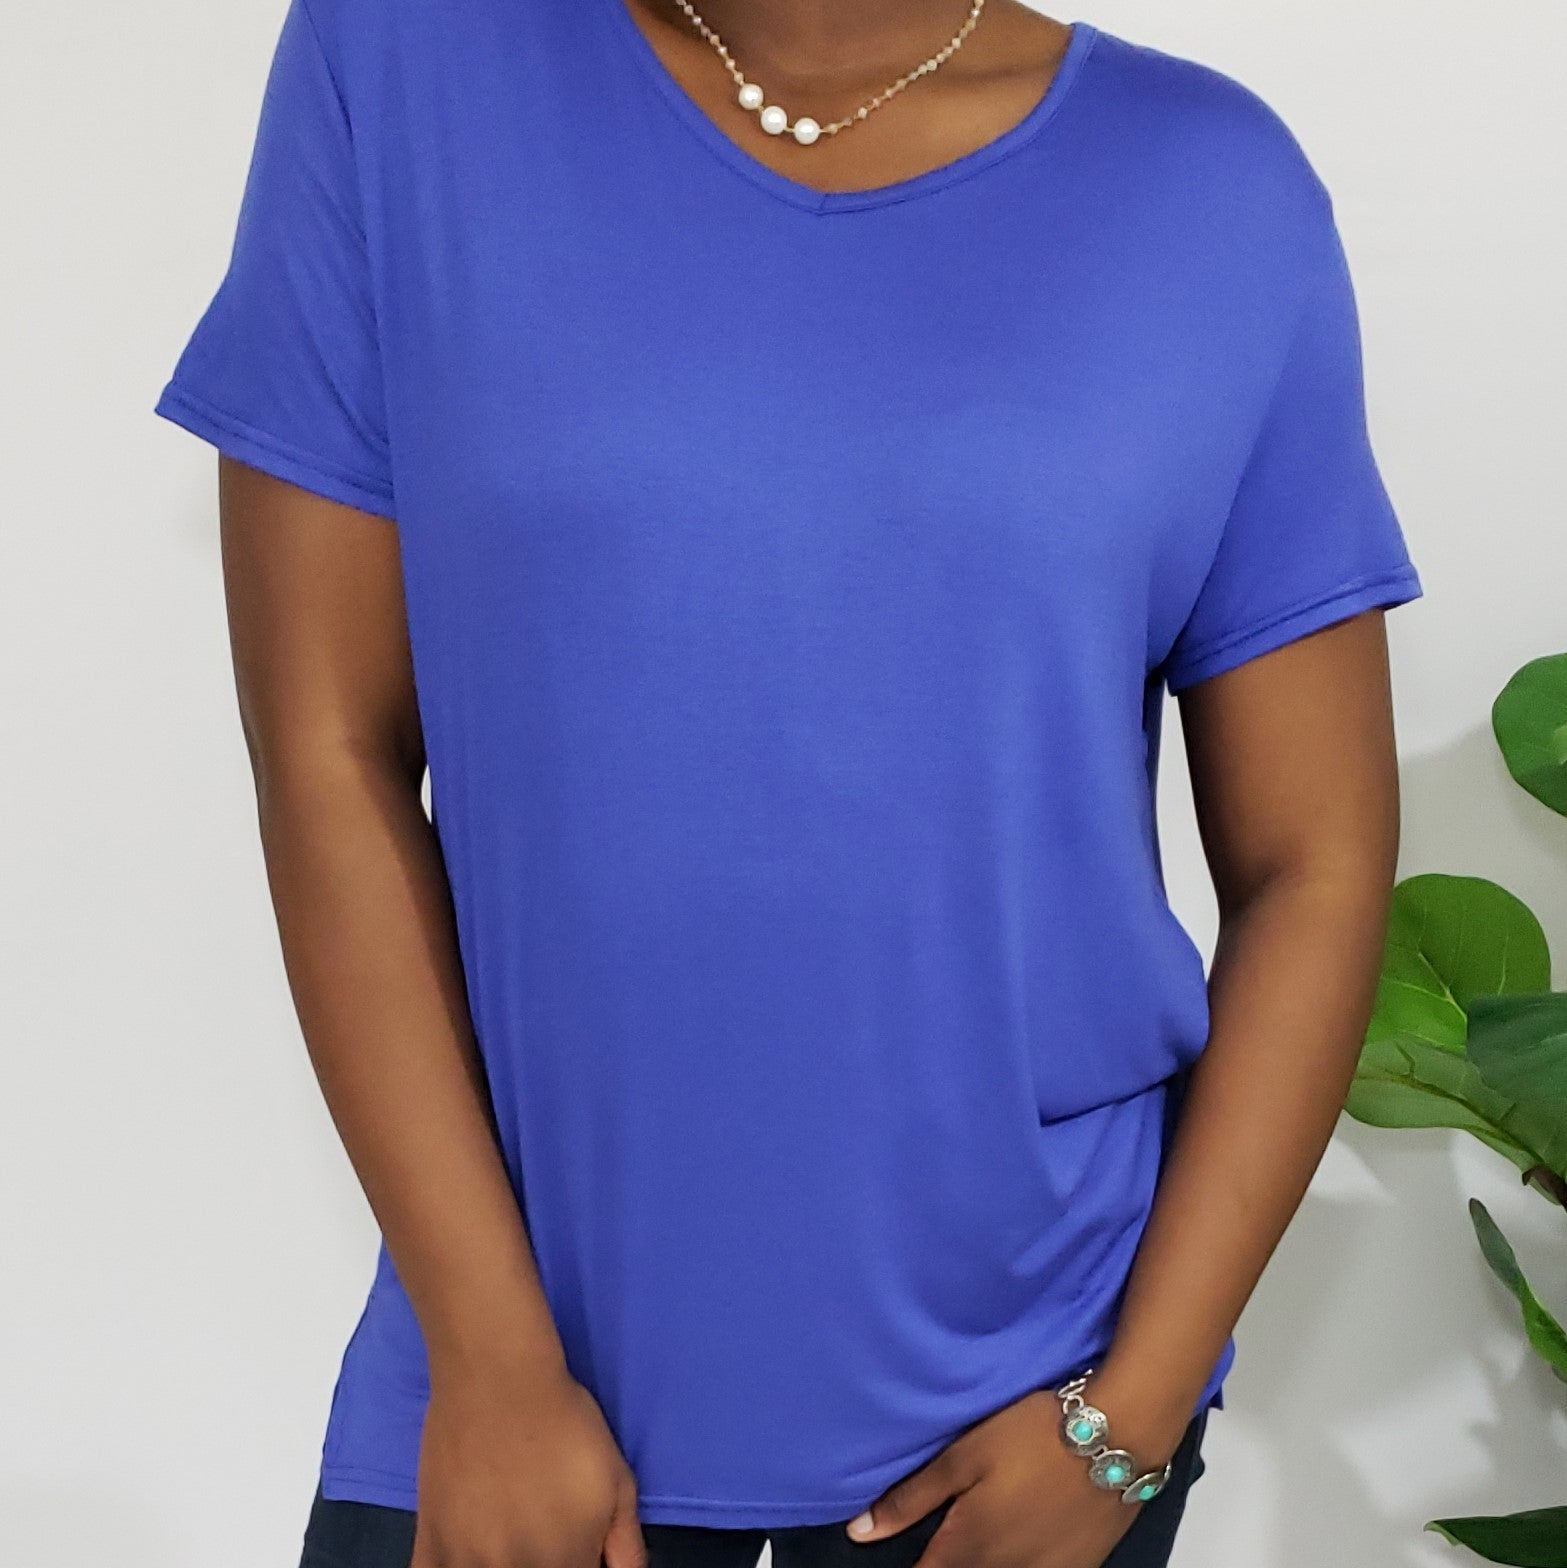 Lori Cobalt Blue V-Neck Buttery Soft T-Shirt - Houzz of DVA Boutique